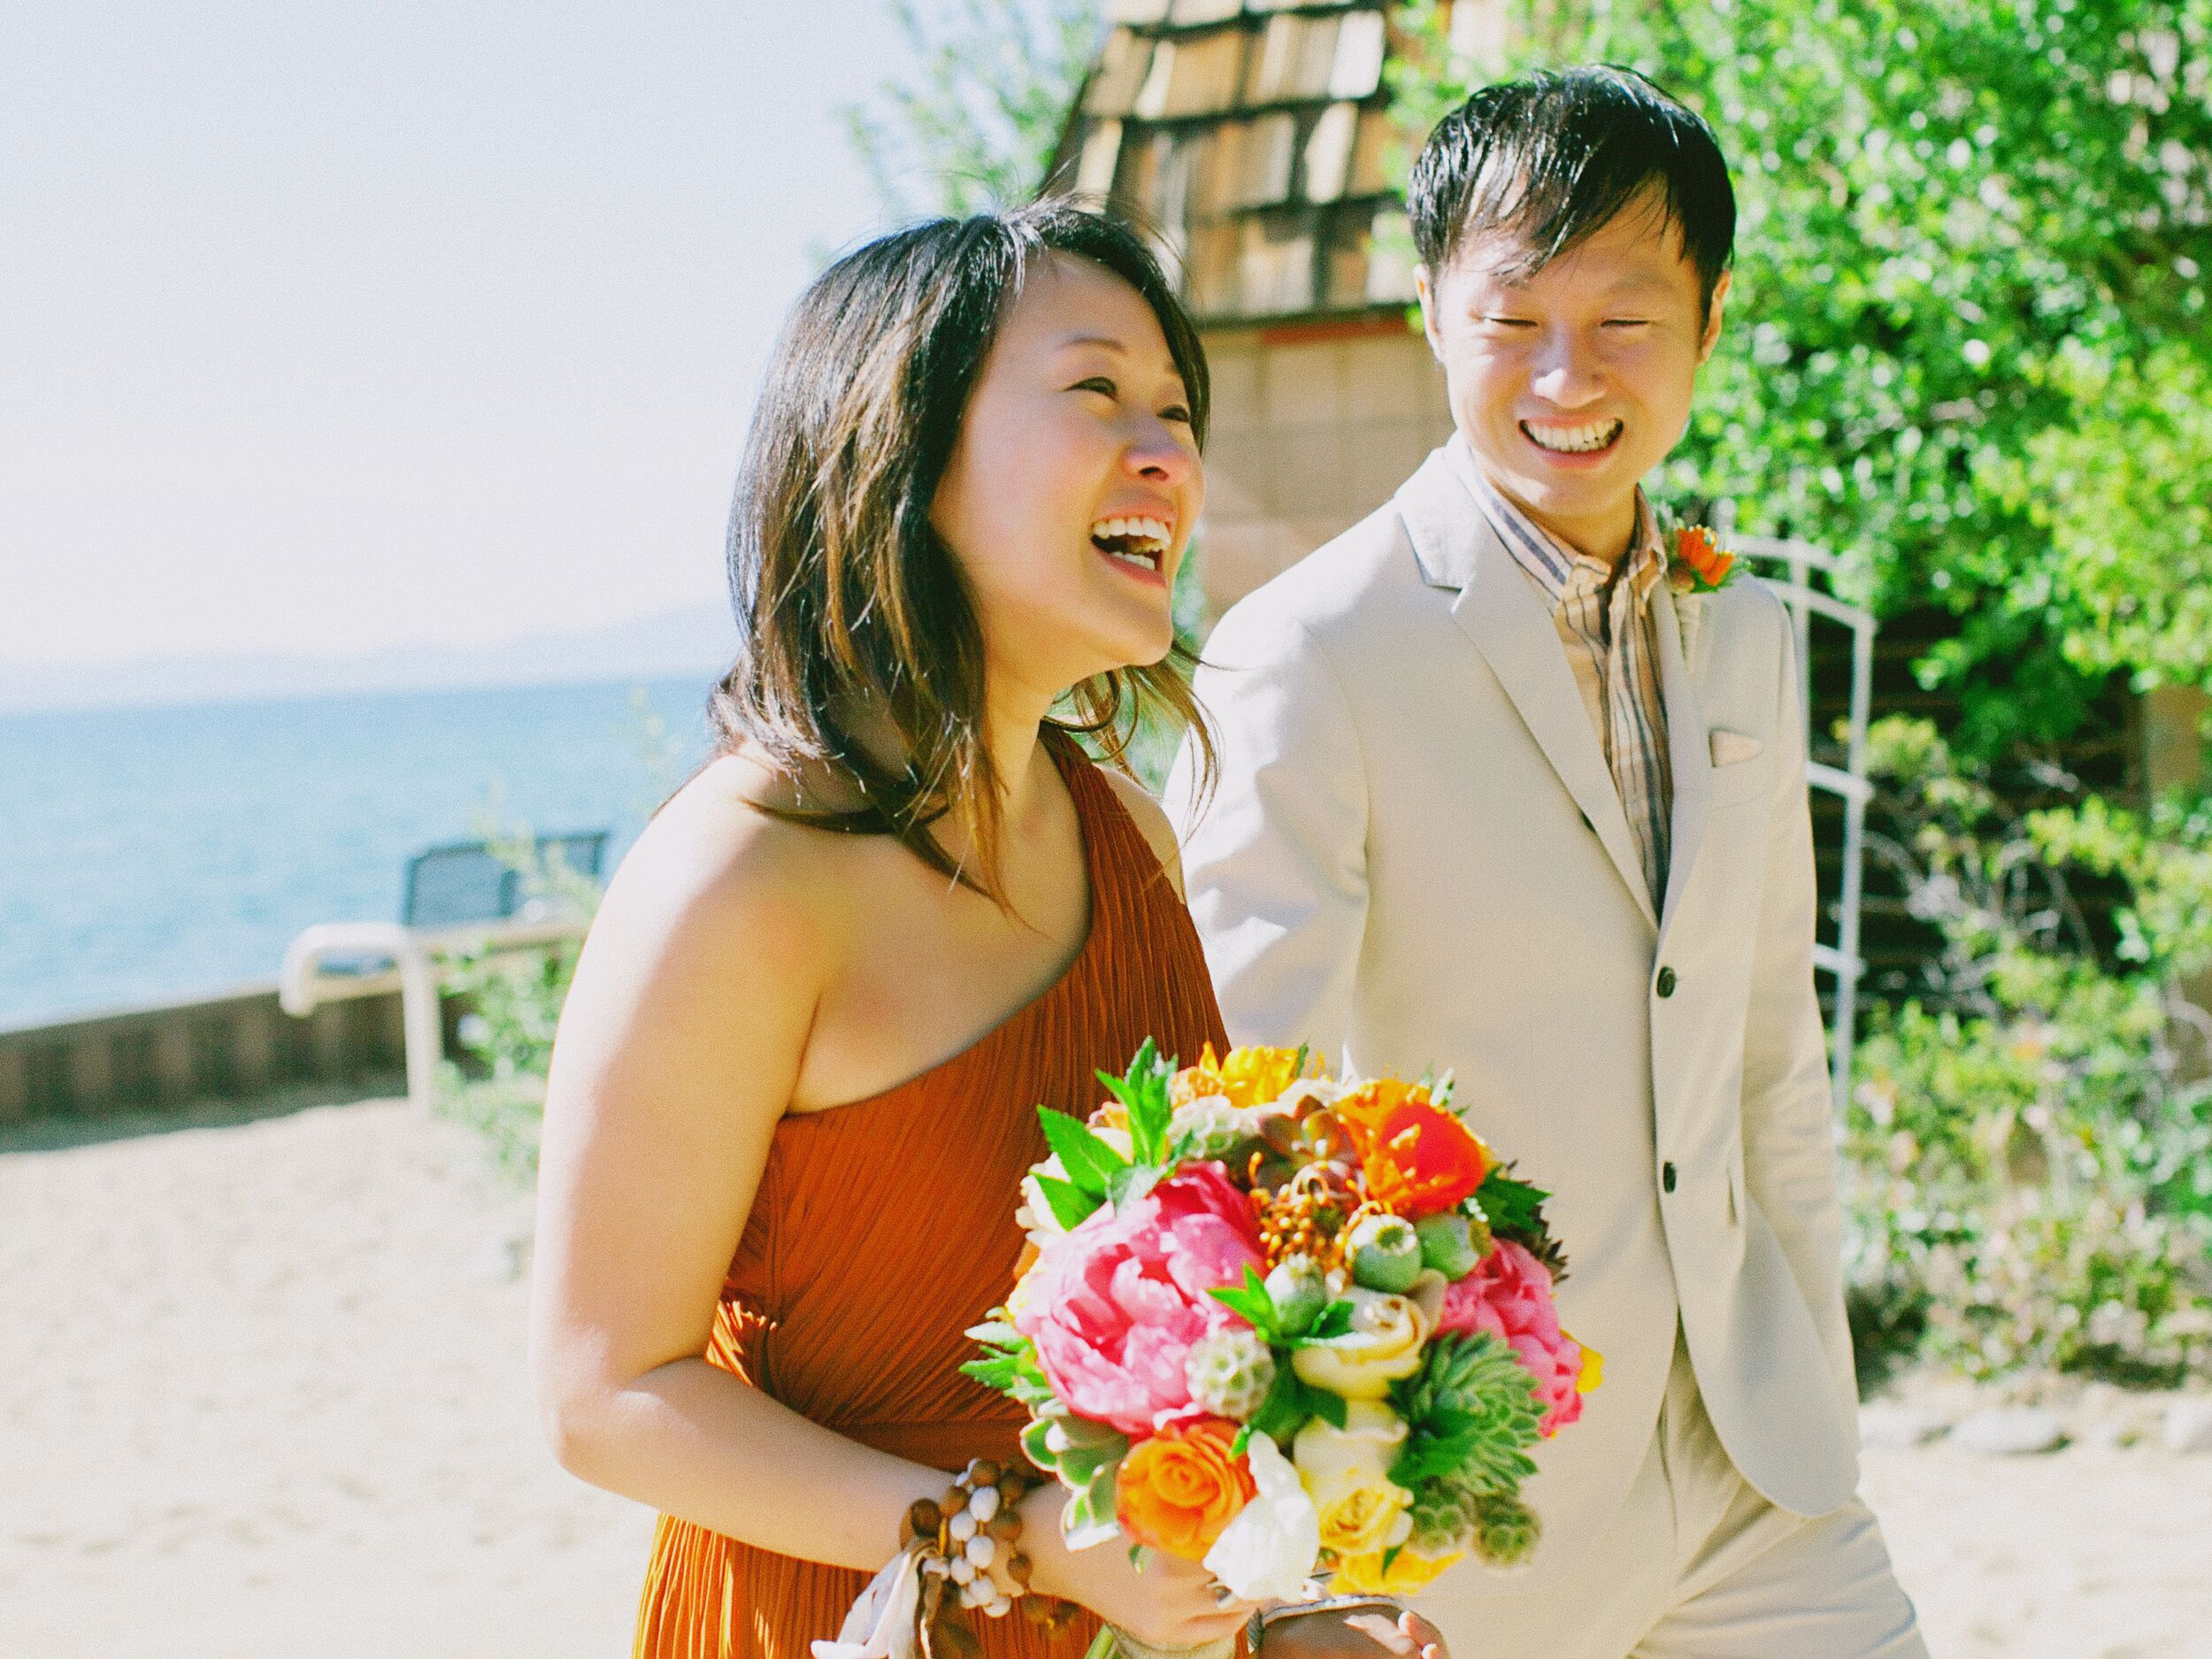 Wedding Vow Renewal How To Renew Your Vows